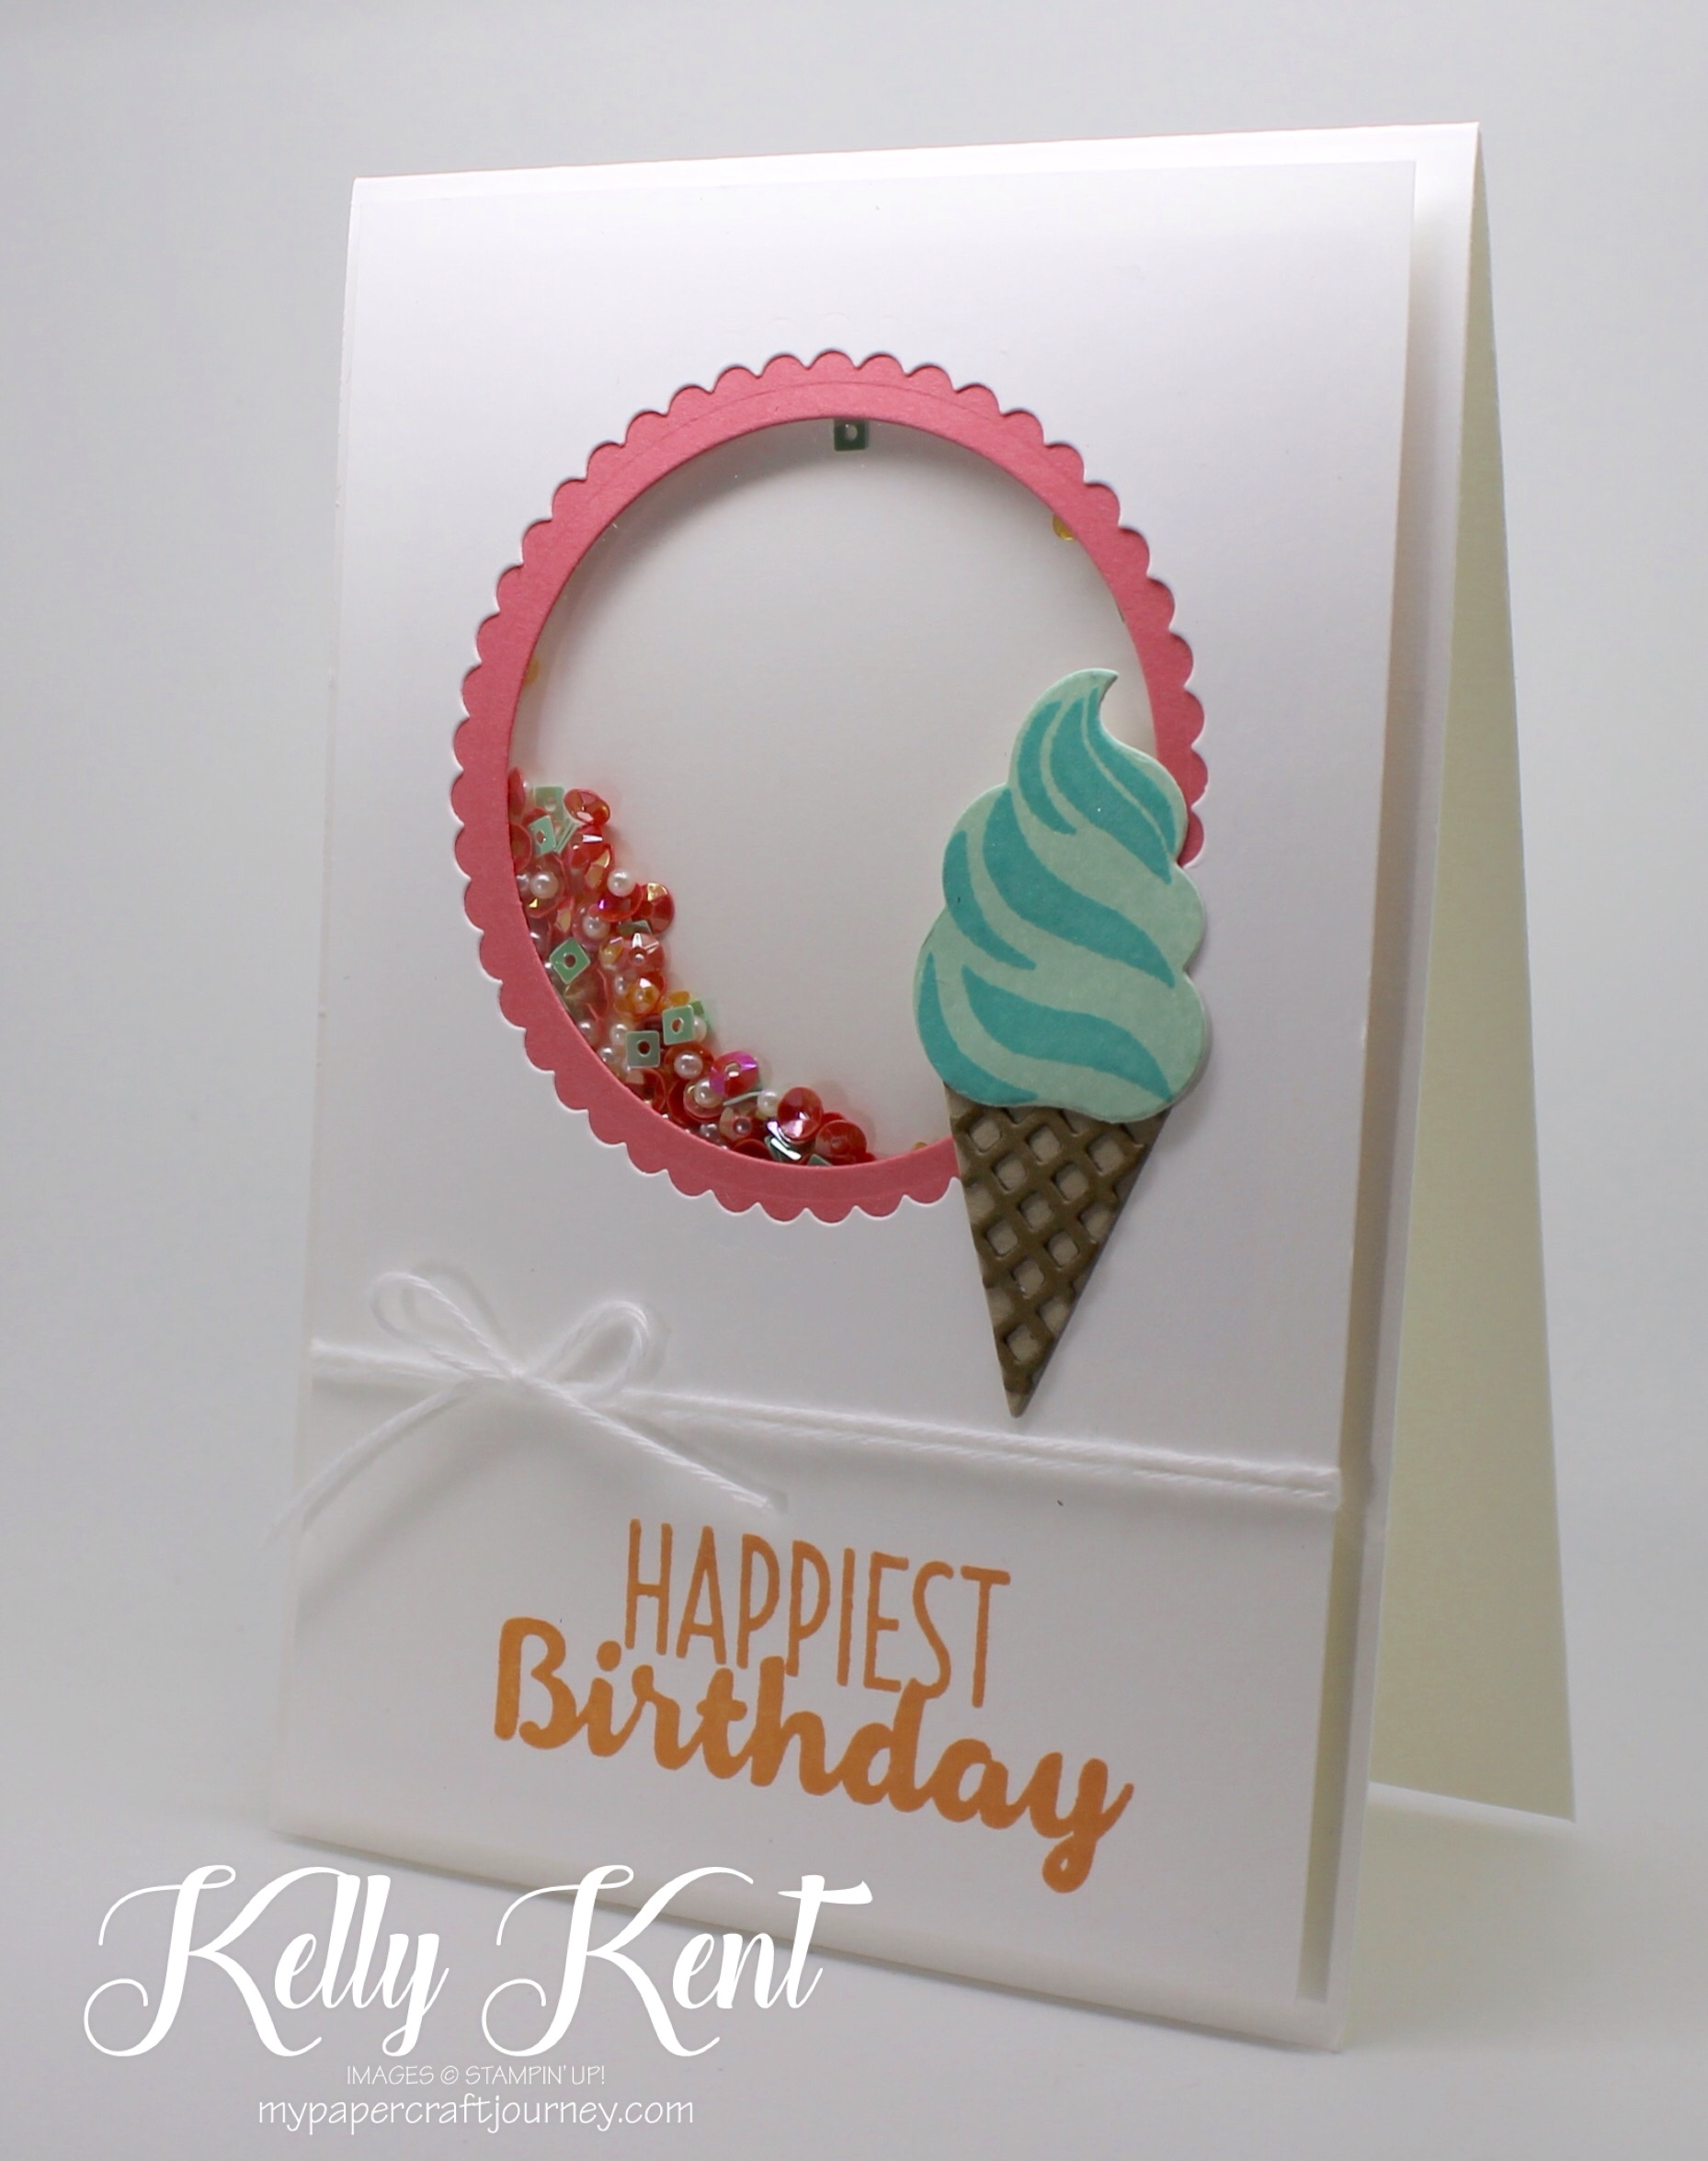 Cool Treats Shaker Card. Kelly Kent - mypapercraftjourney.com.